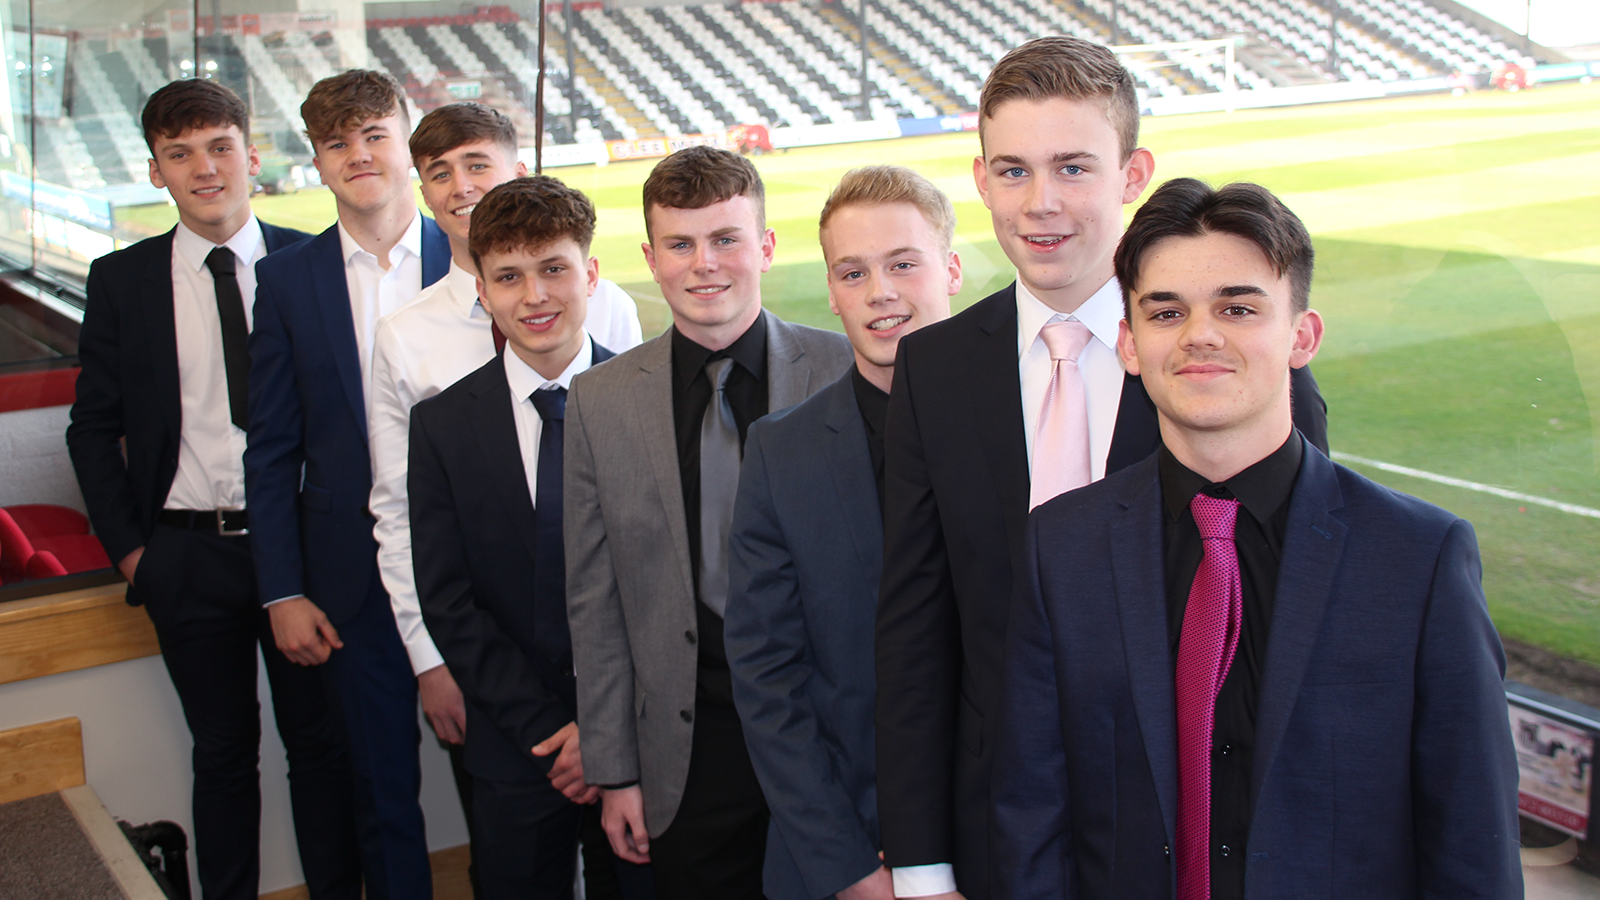 Grimsby Town youth team new starters 2019-20. Image credits: Anne Boyers.